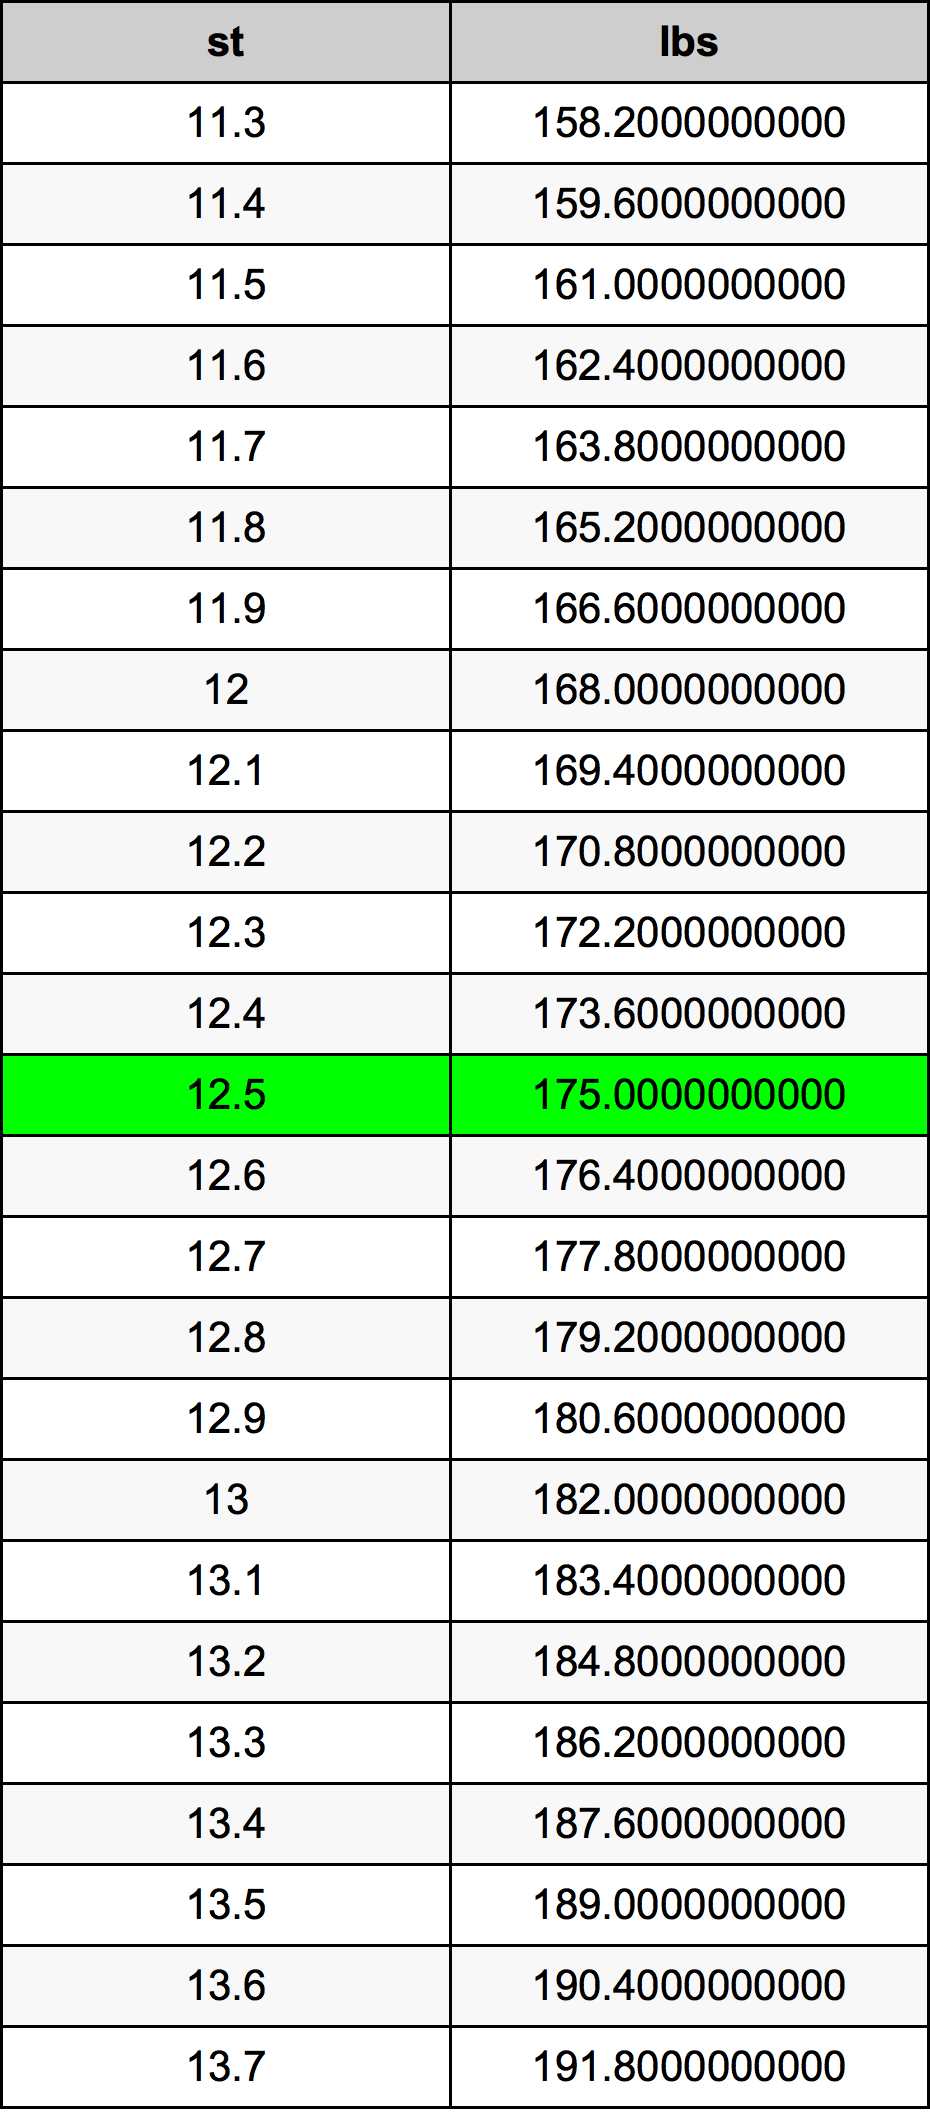 Further Stones To Pounds Calculations